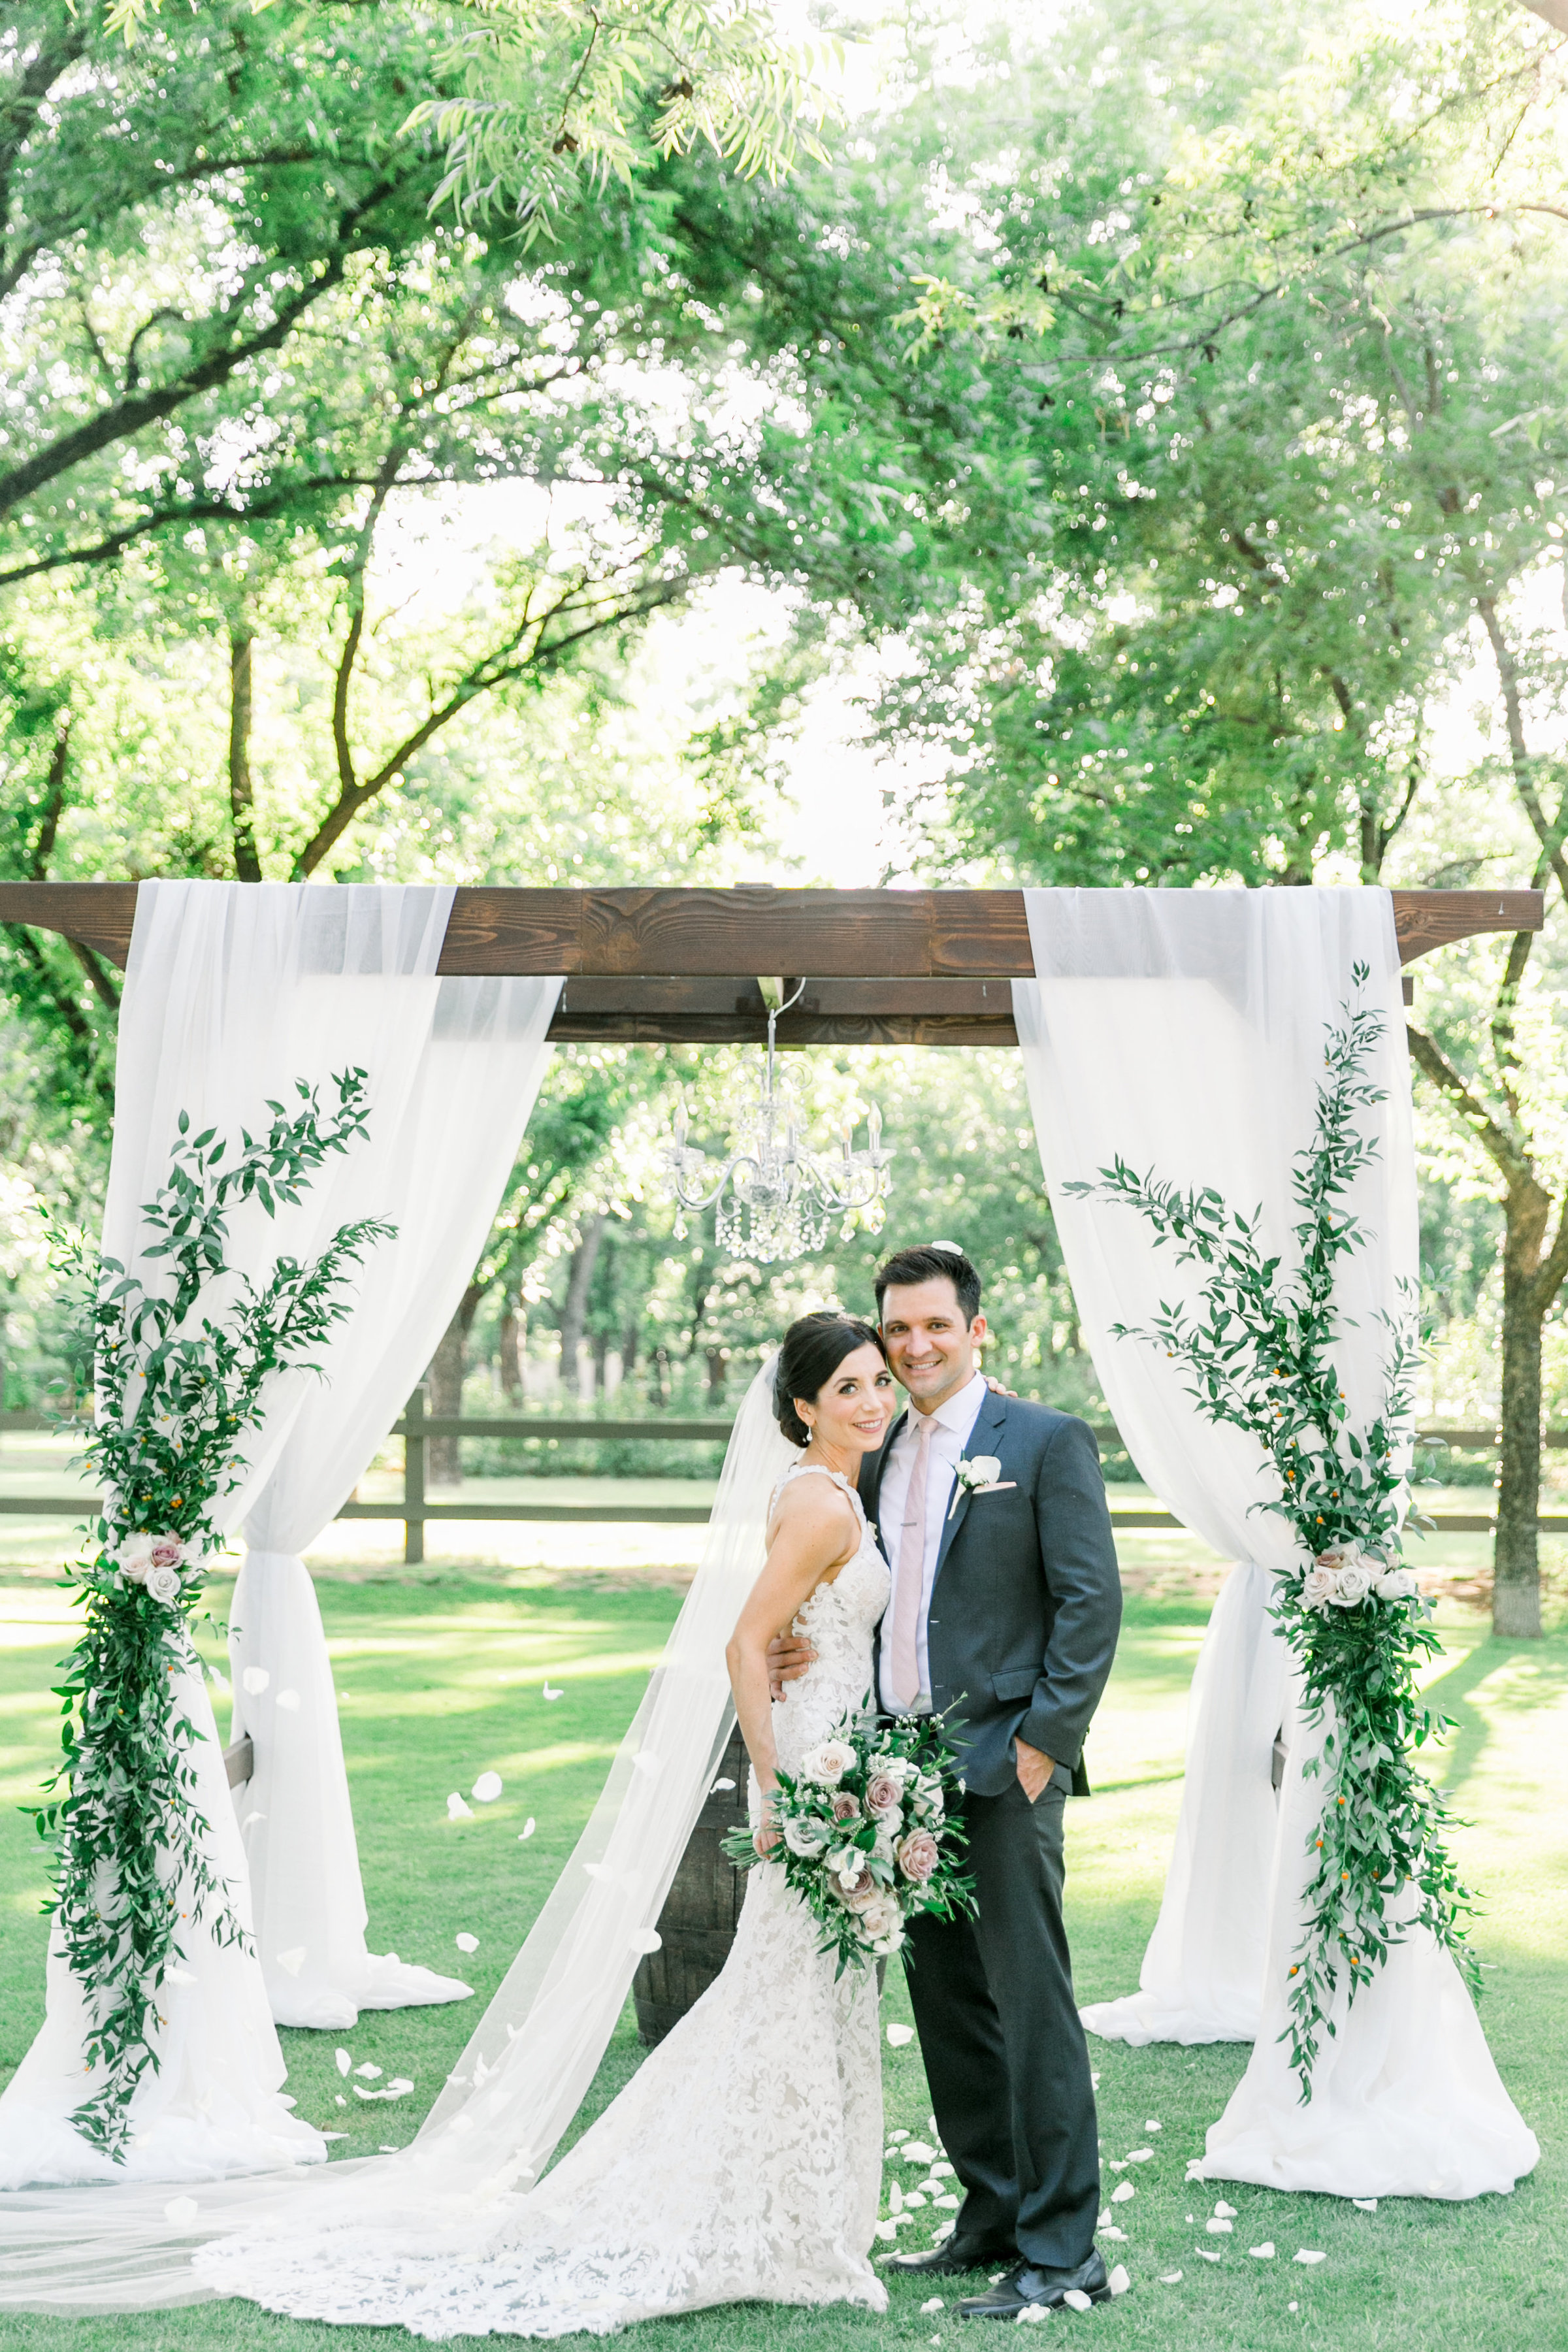 Karlie Colleen Photography - Venue At The Grove - Arizona Wedding - Maggie & Grant -73